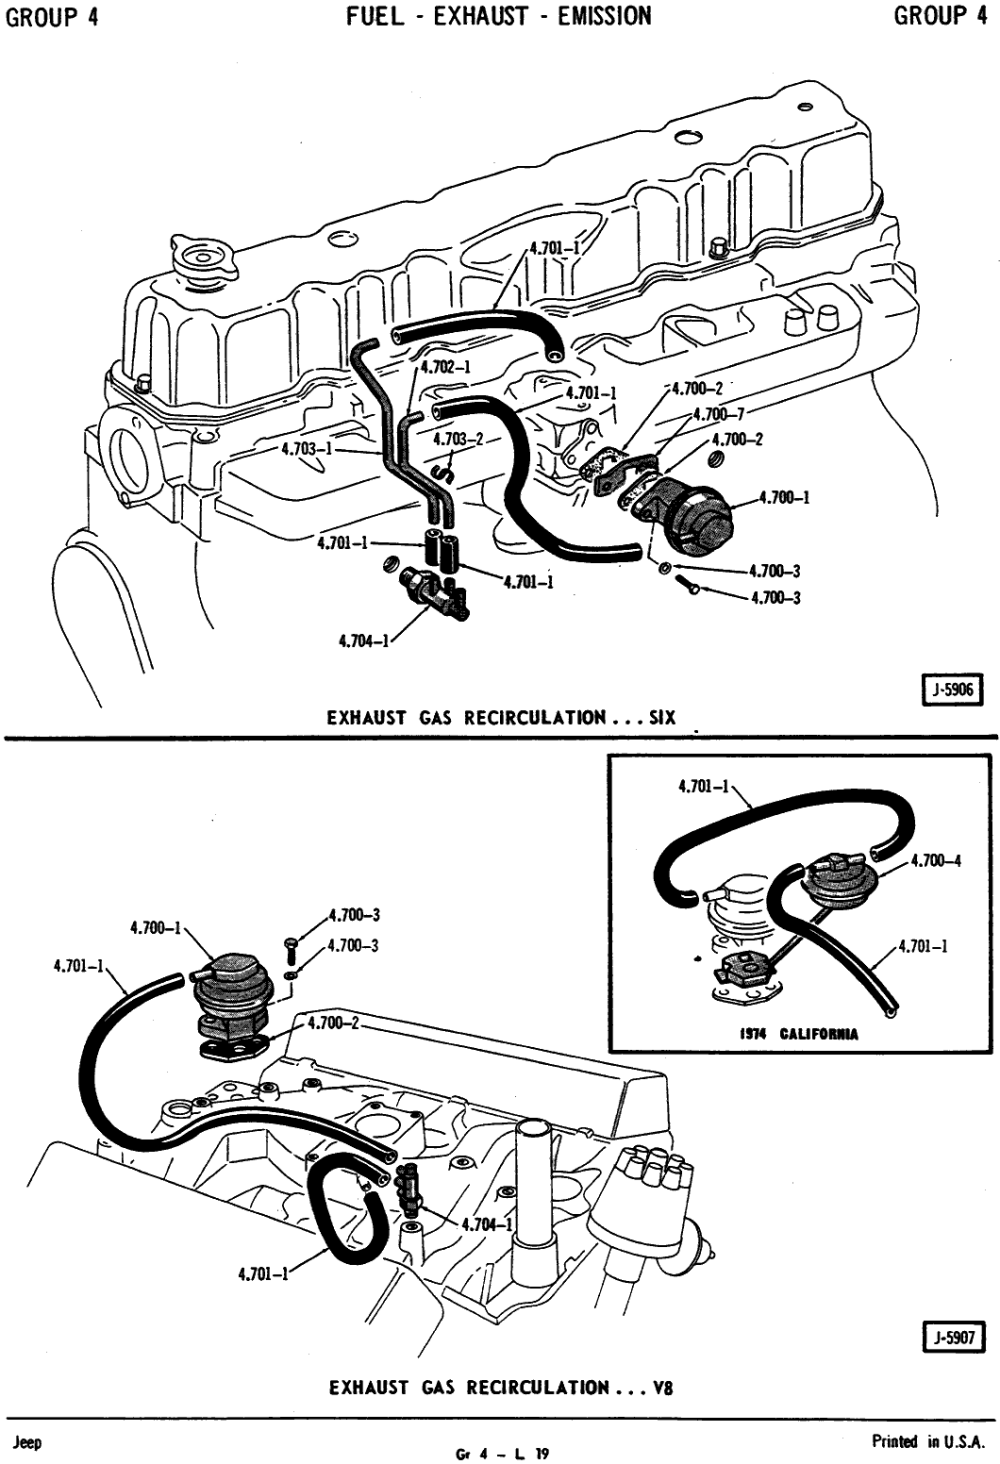 medium resolution of jeep vacuum line diagrams wiring diagram article 1998 jeep cherokee vacuum line diagram jeep 4 0 vacuum line diagram